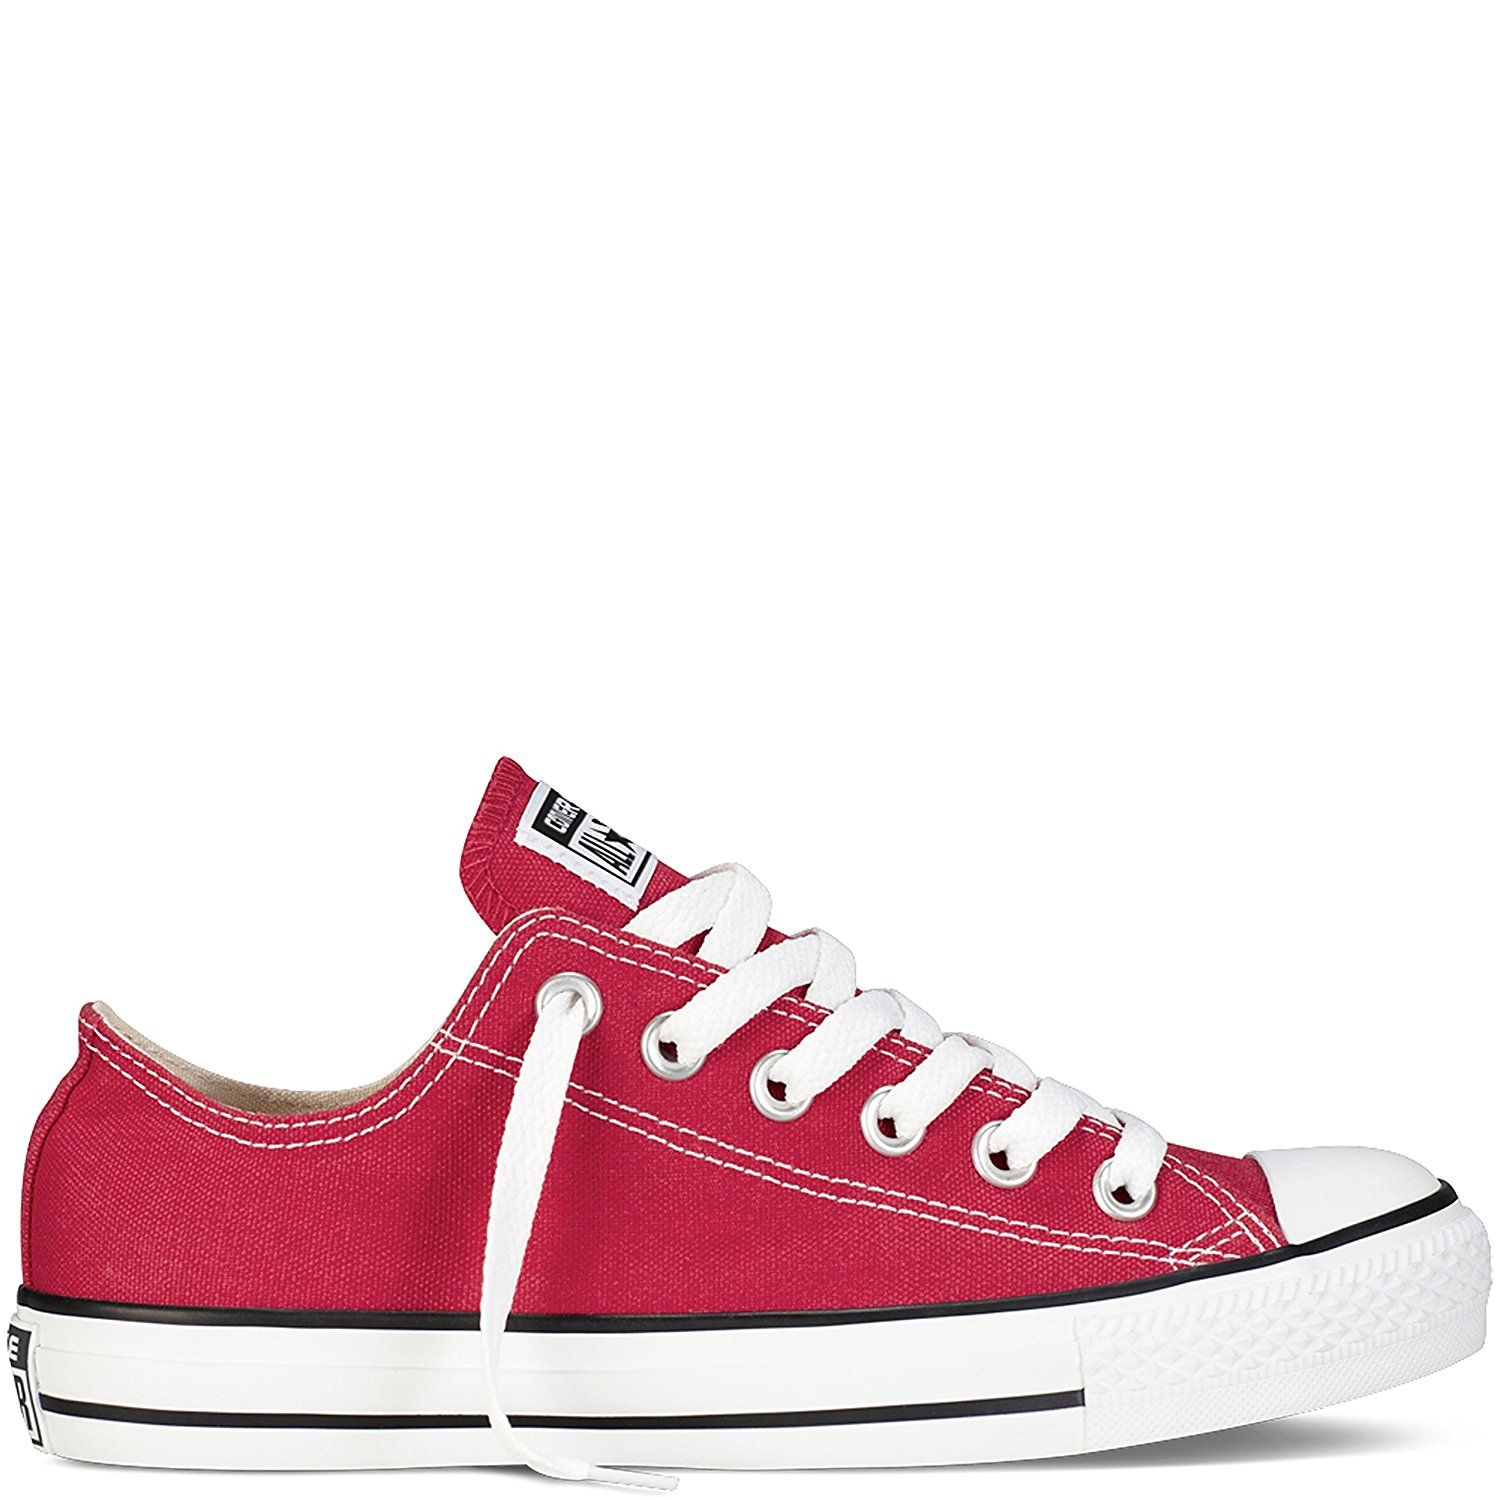 CONVERSE SNEAKERS All Star Trainer OX White / Red /Navy Unisex Man Scarpe Casual